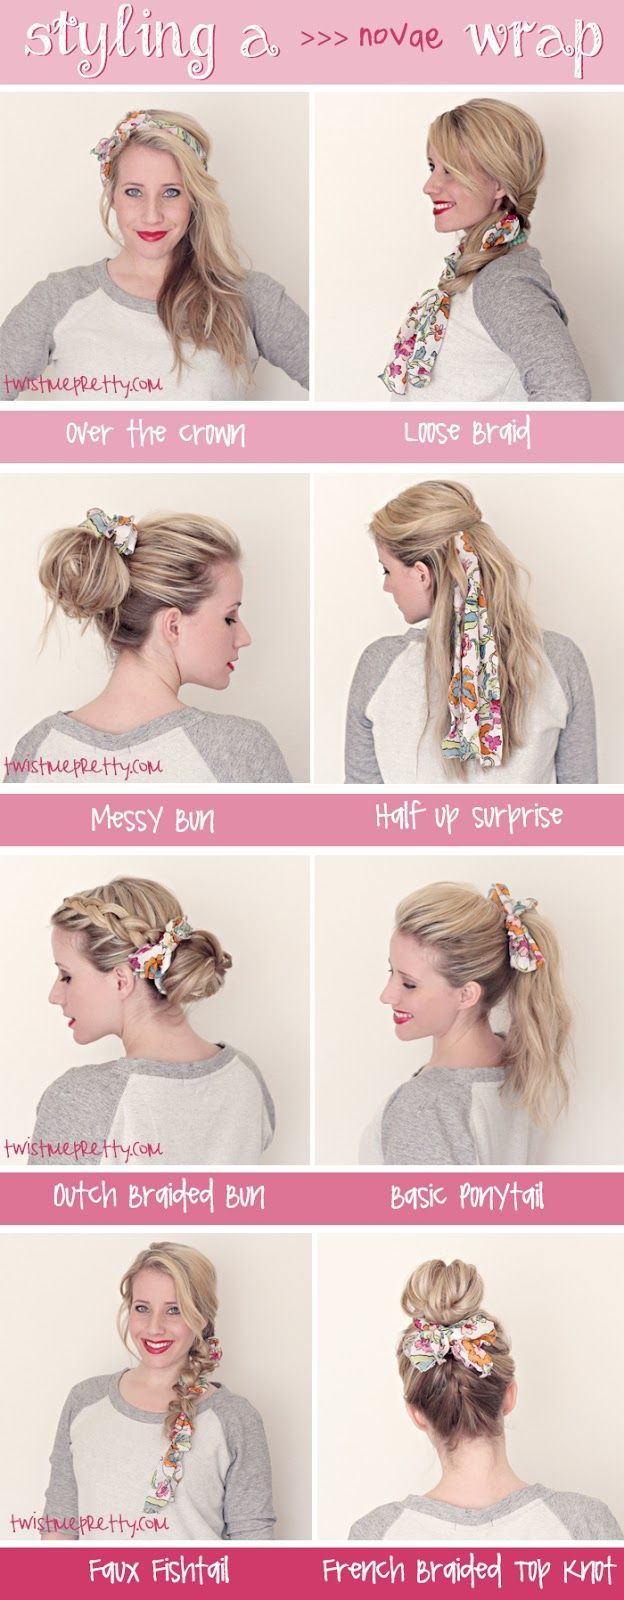 20 Ways To Tie A Scarf In Your Hair That Don T Look Like You Re